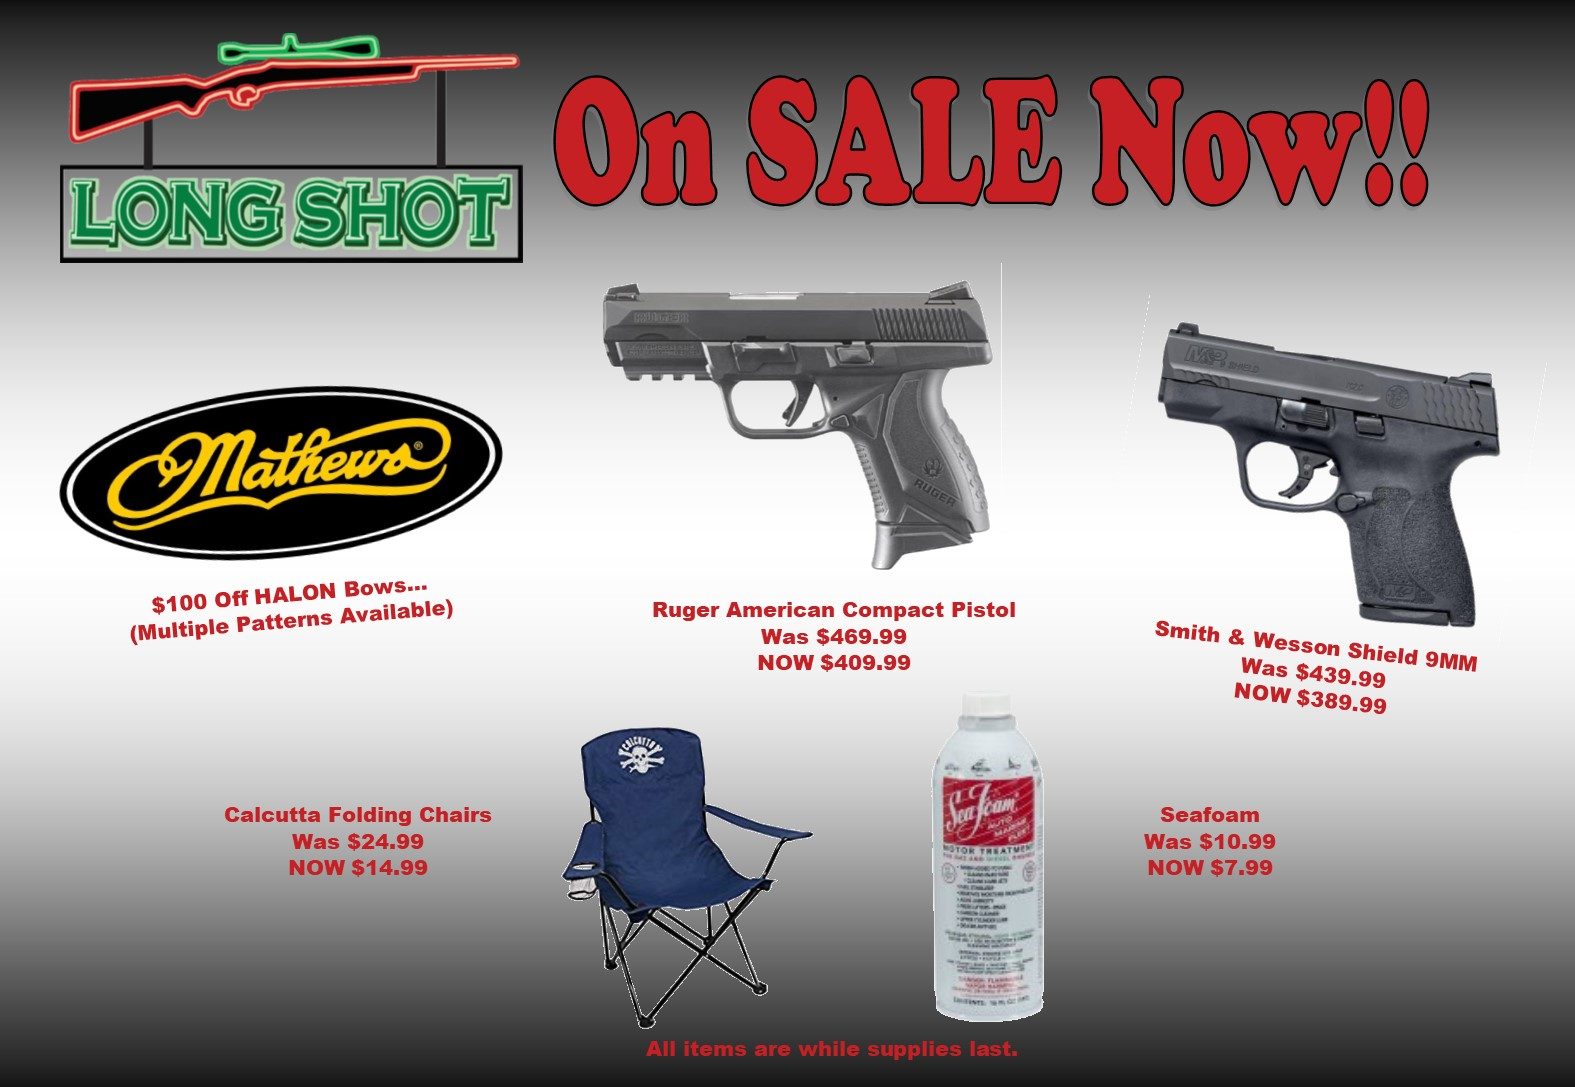 long shot july specials